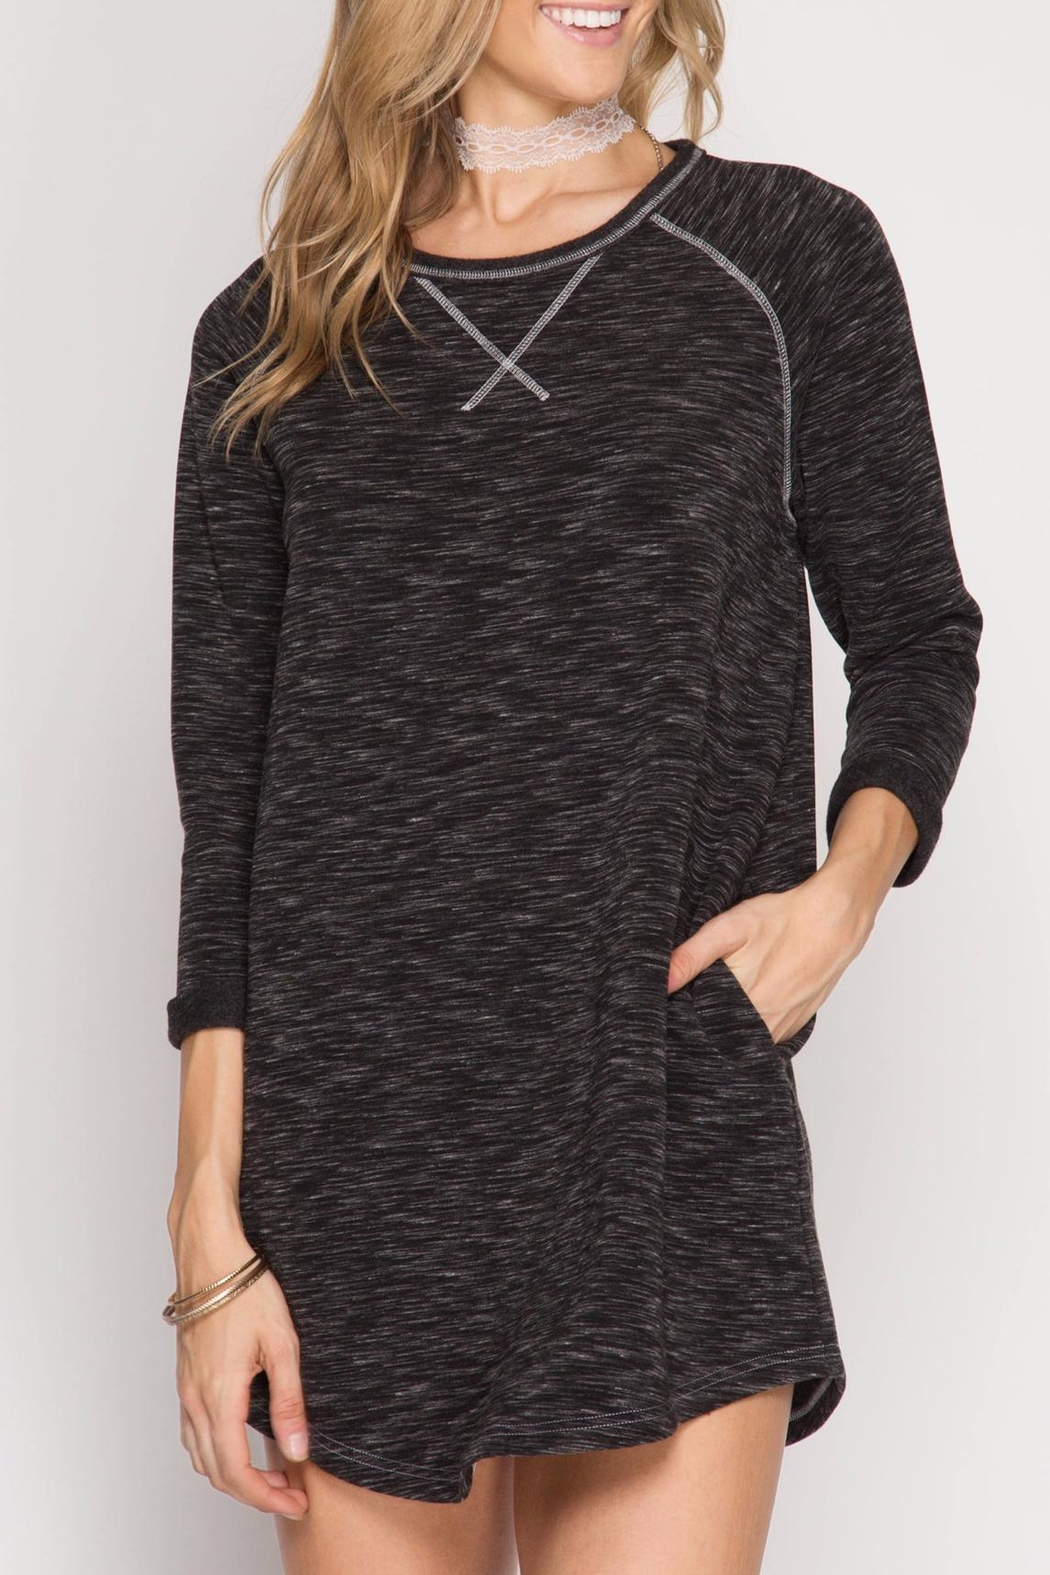 She + Sky Soft Knit Dress - Main Image